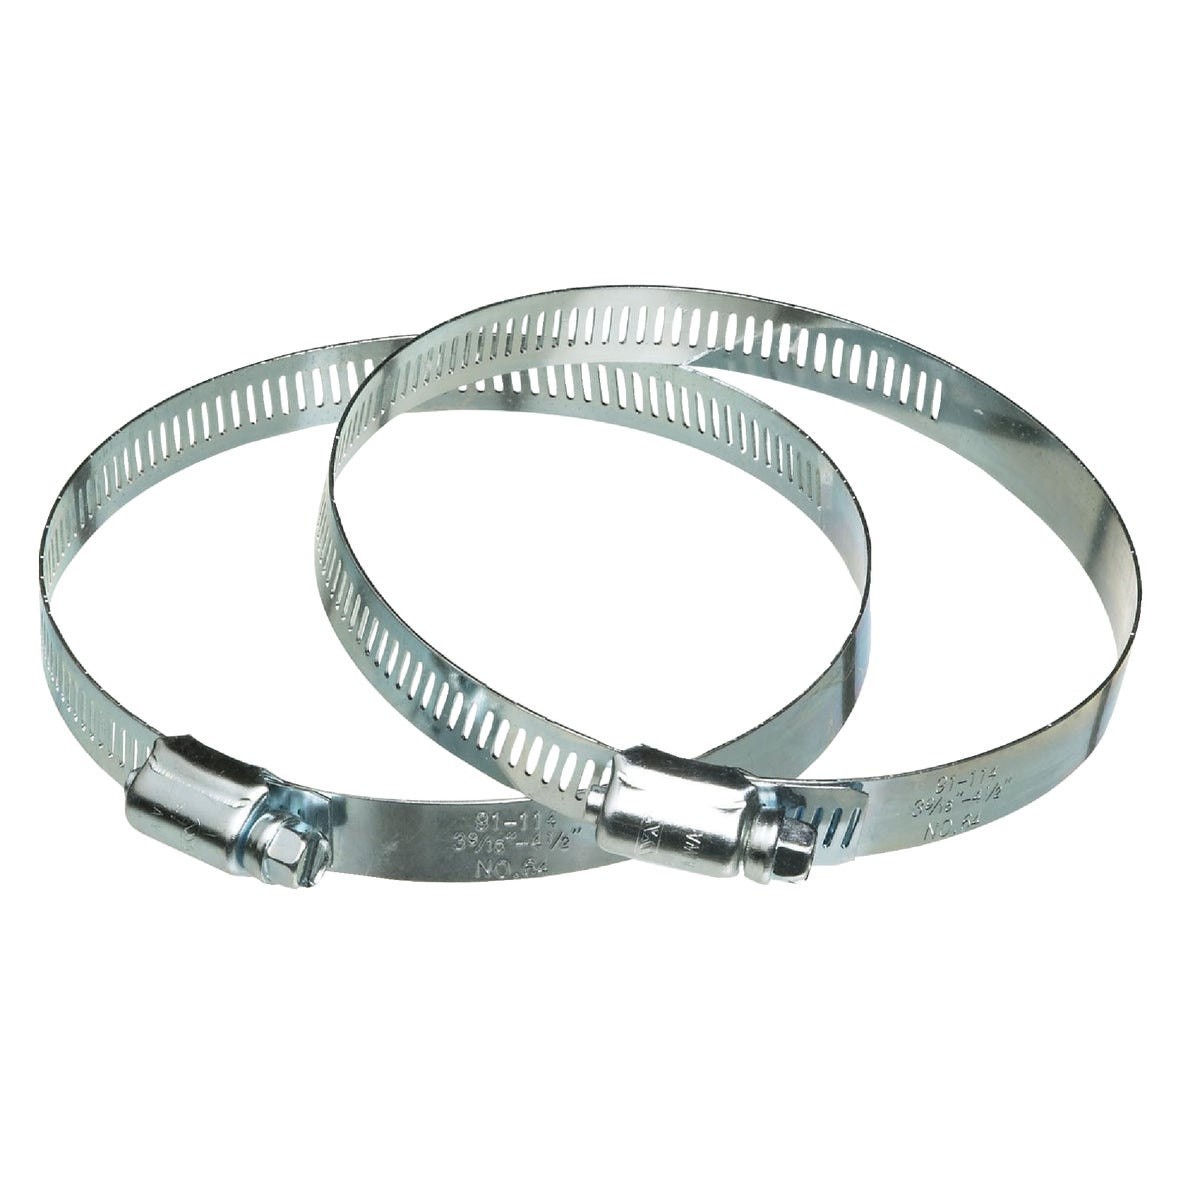 "2PK 6"" METAL CLAMP"